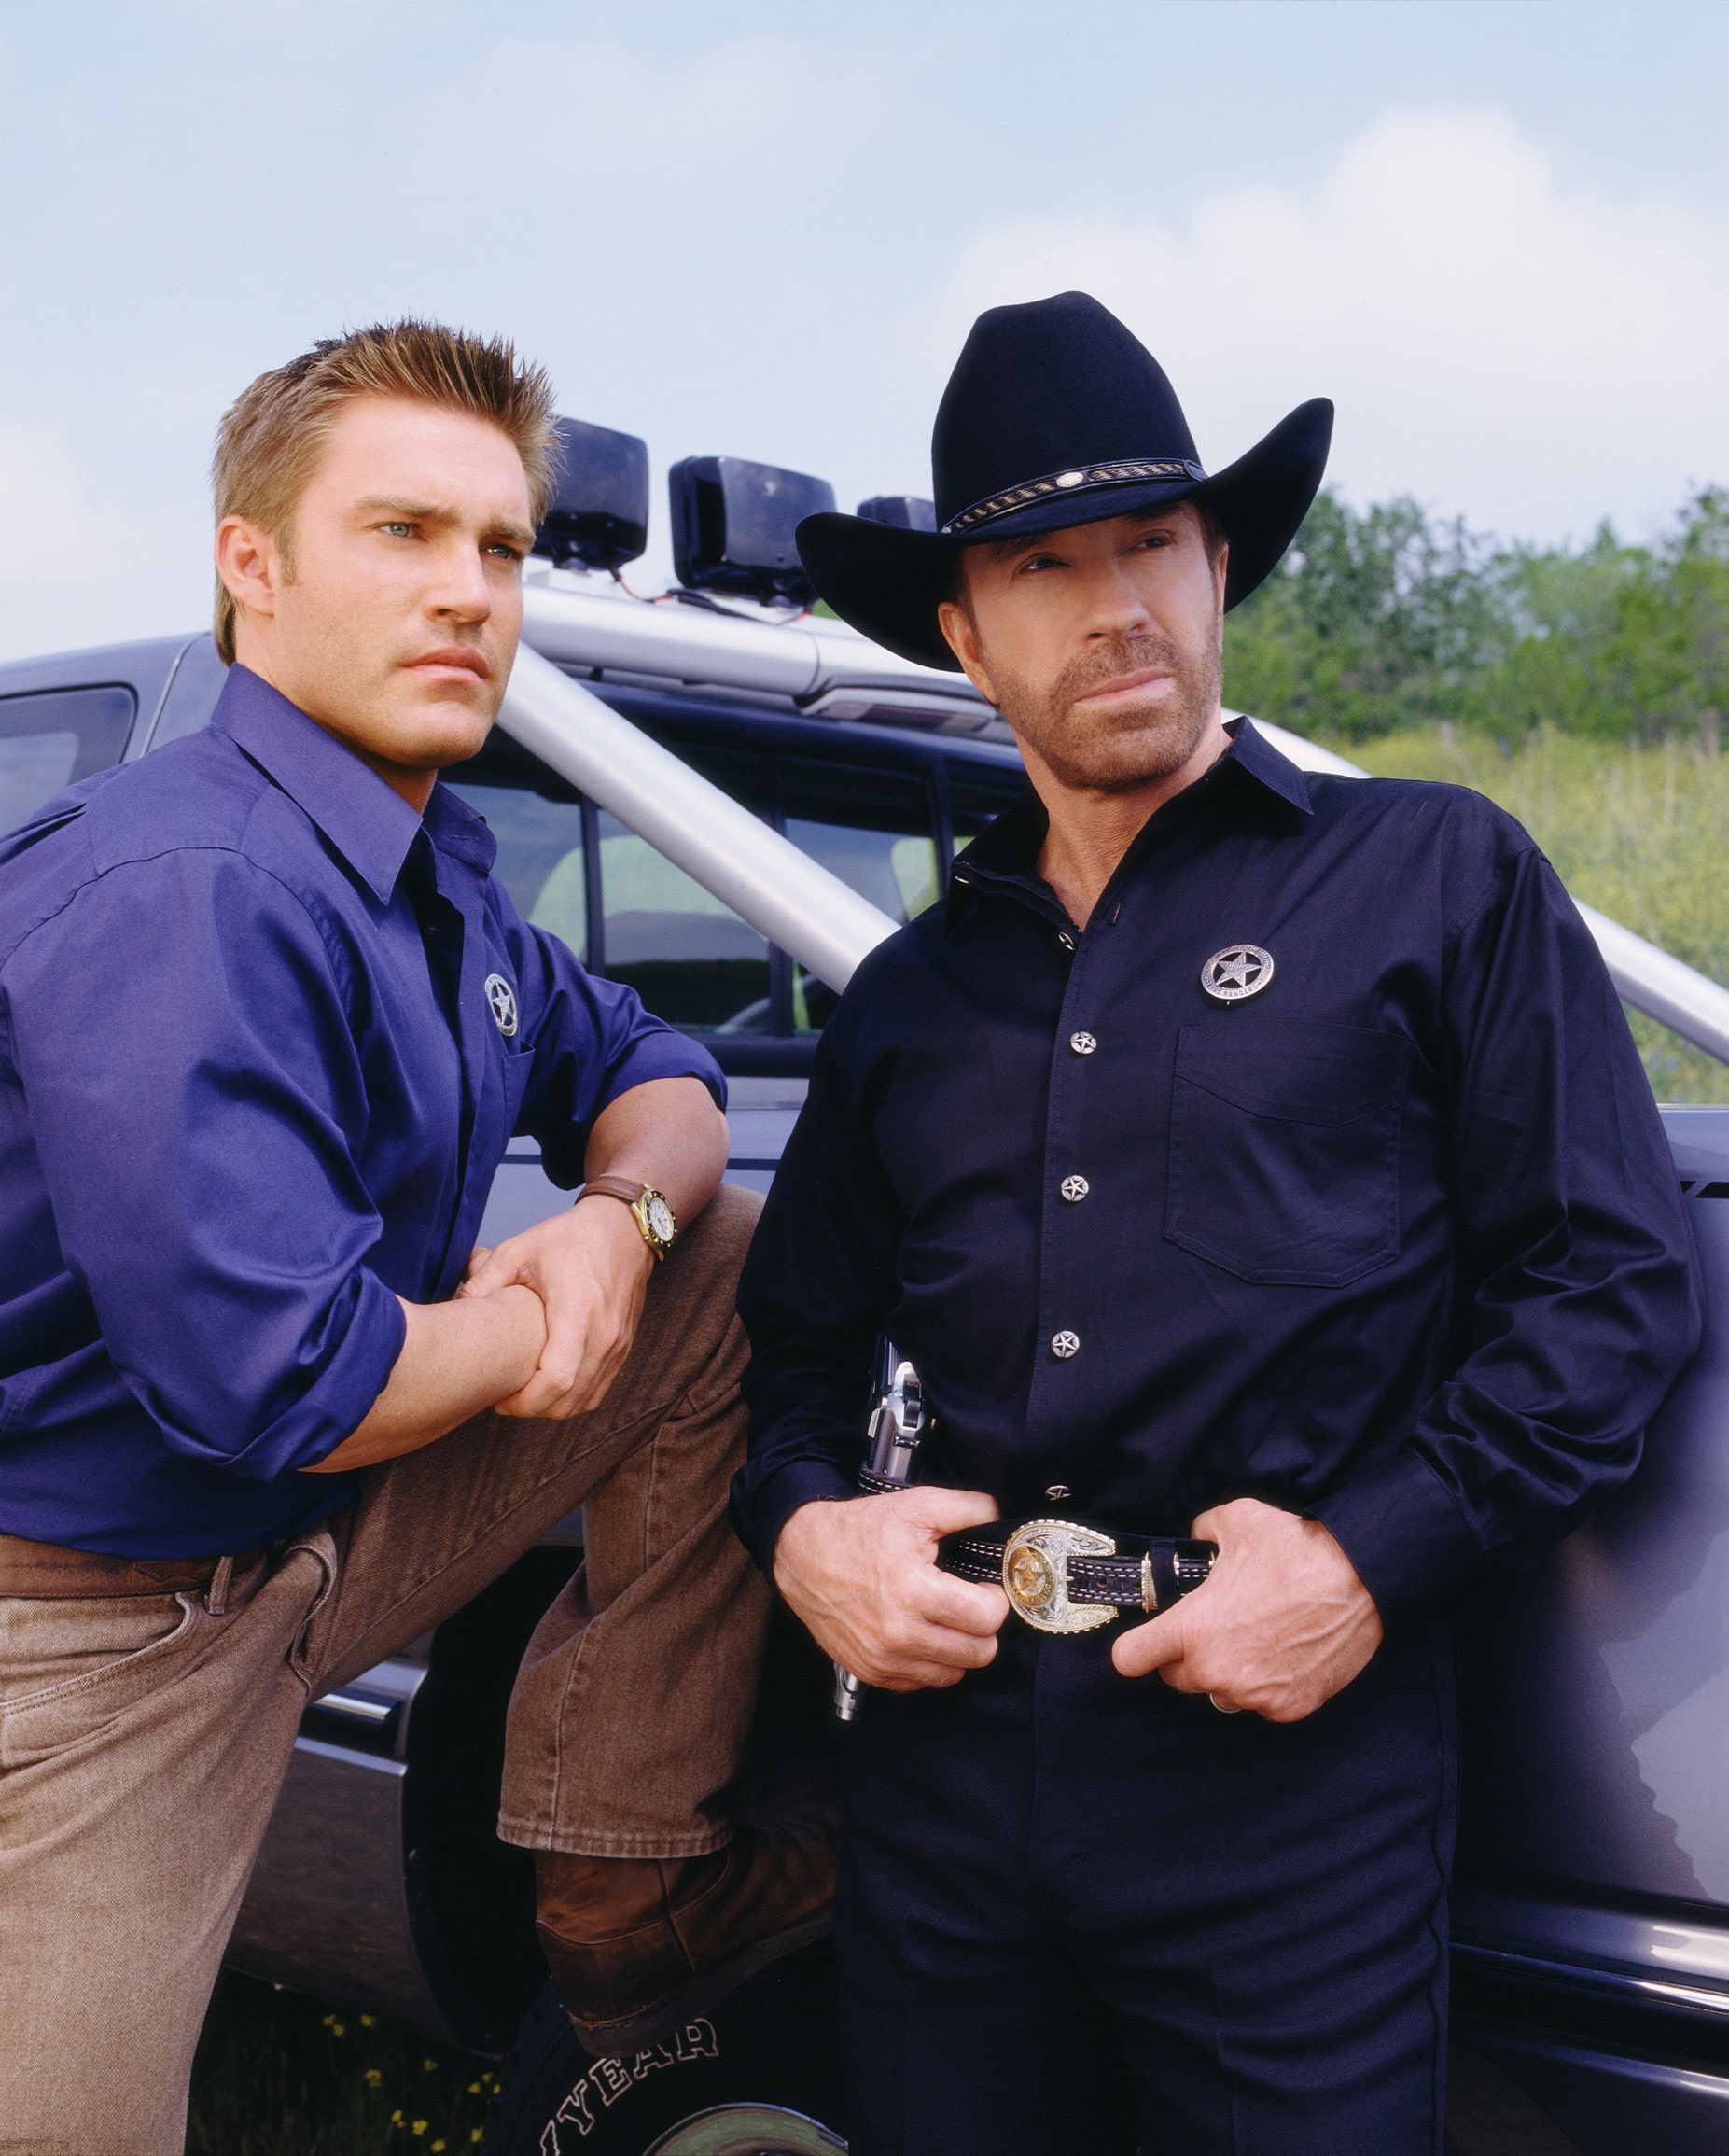 walker, texas ranger then and now